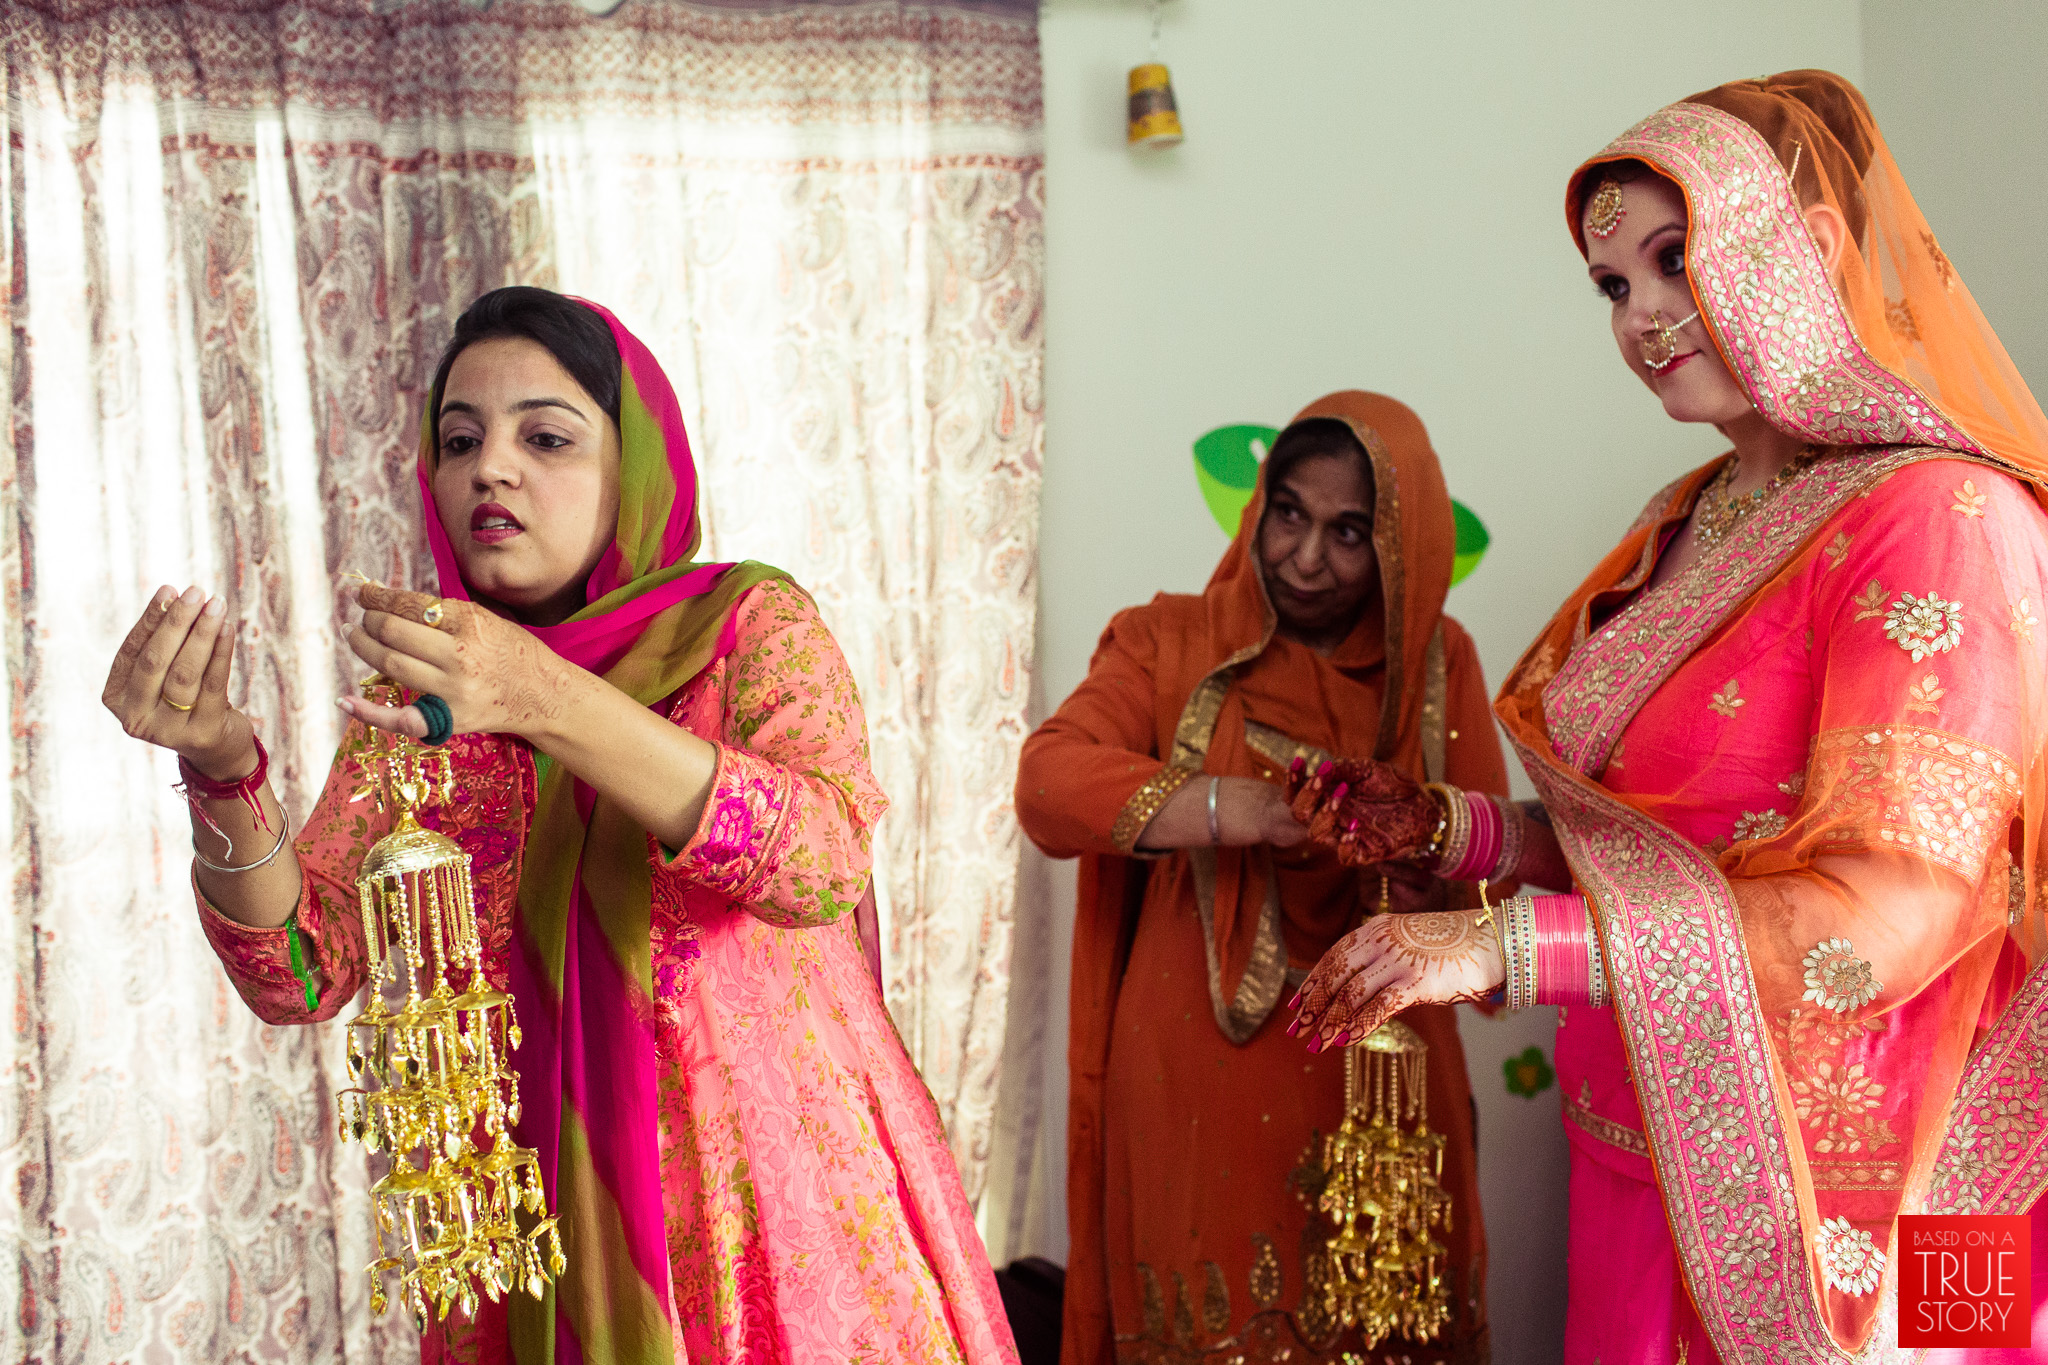 candid-photography-sikh-wedding-bangalore-0013.jpg